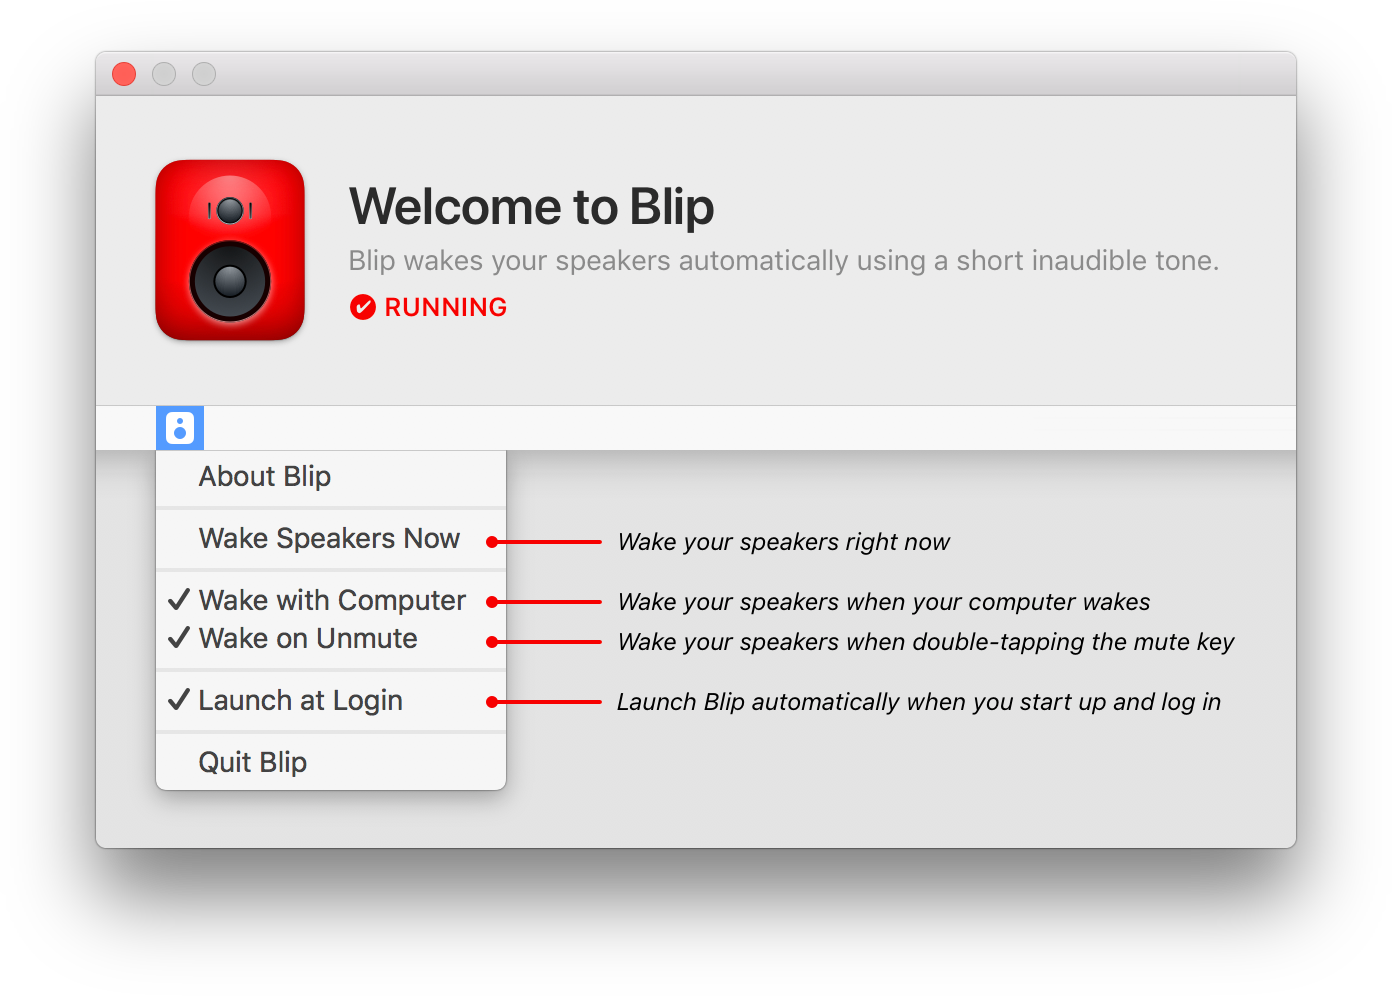 Blip's welcome screen, showing its menubar menu and a description of each feature.